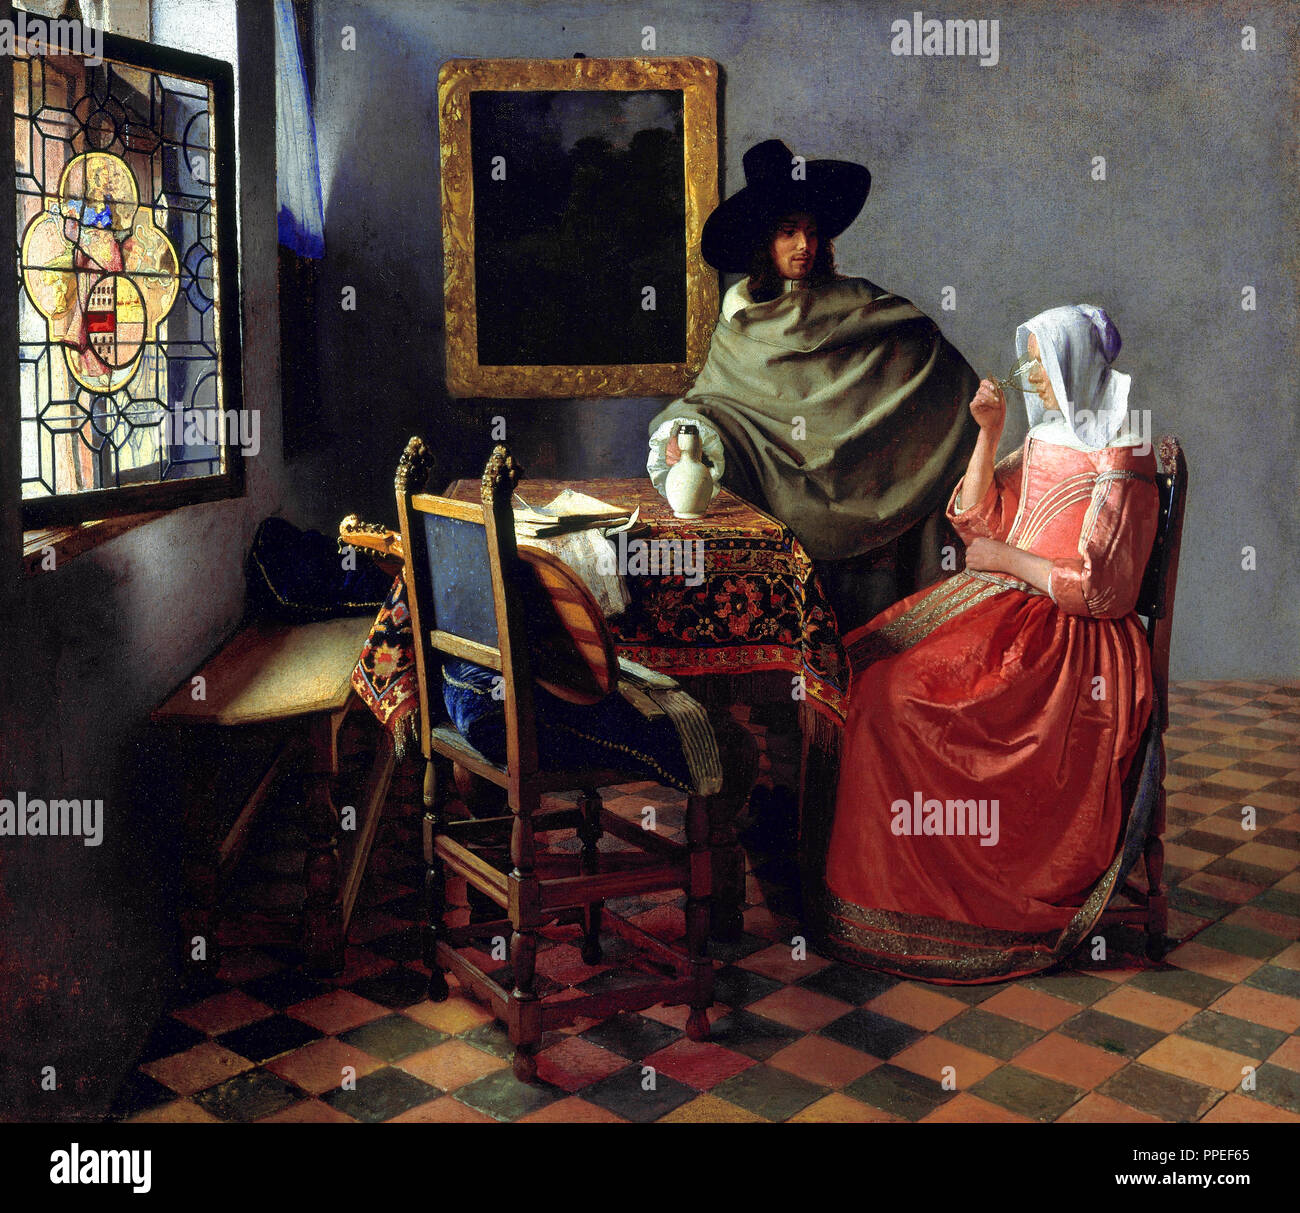 Johannes Vermeer - The Glass of Wine. Circa 1661. Oil on canvas. Gemaldegalerie Alte Meister, Dresden, Germany. - Stock Image